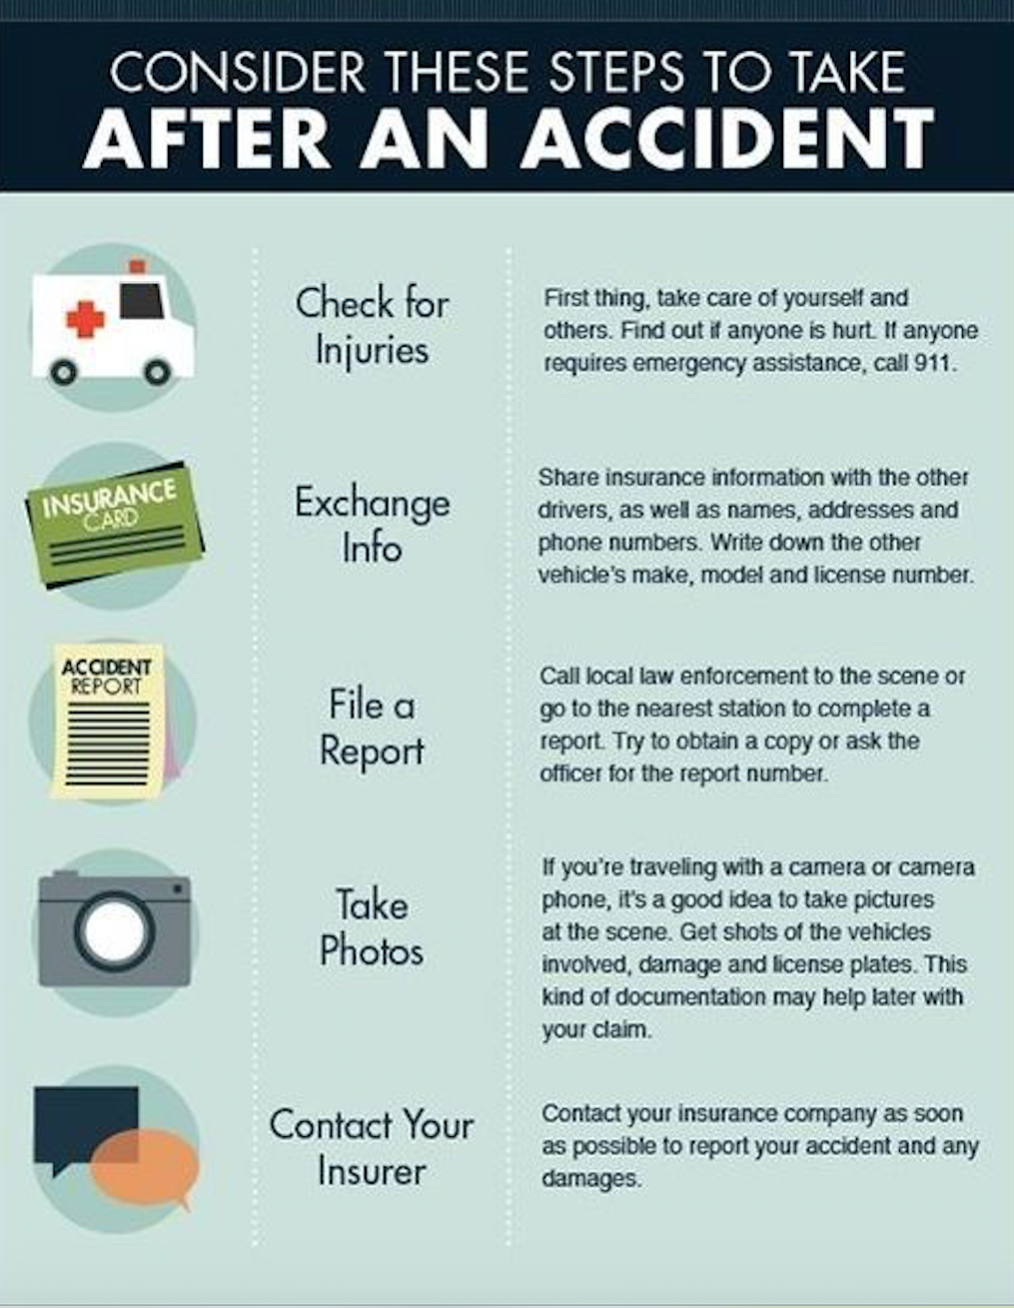 In The Case Of An Accident Remember These 5 Easy Steps That Will